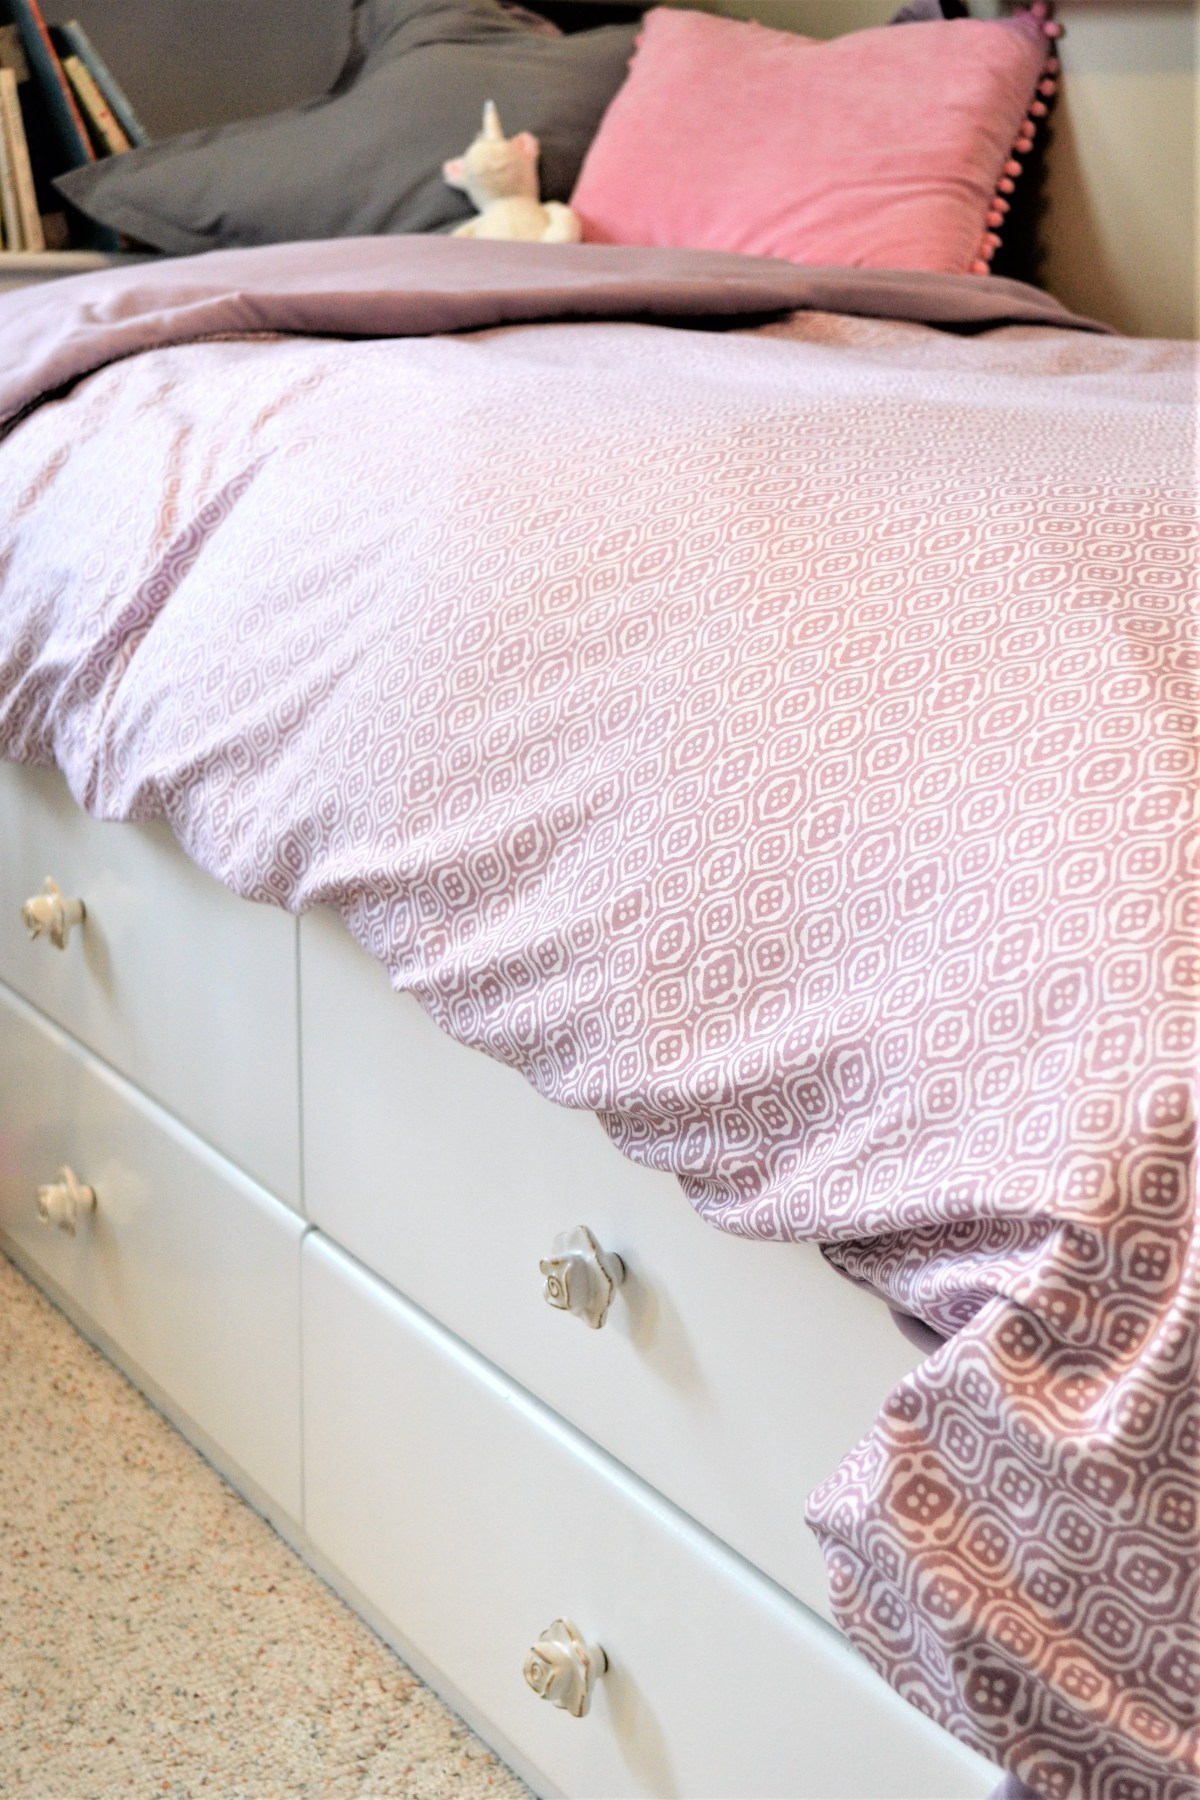 DIY Duvet Cover from Flat Sheets